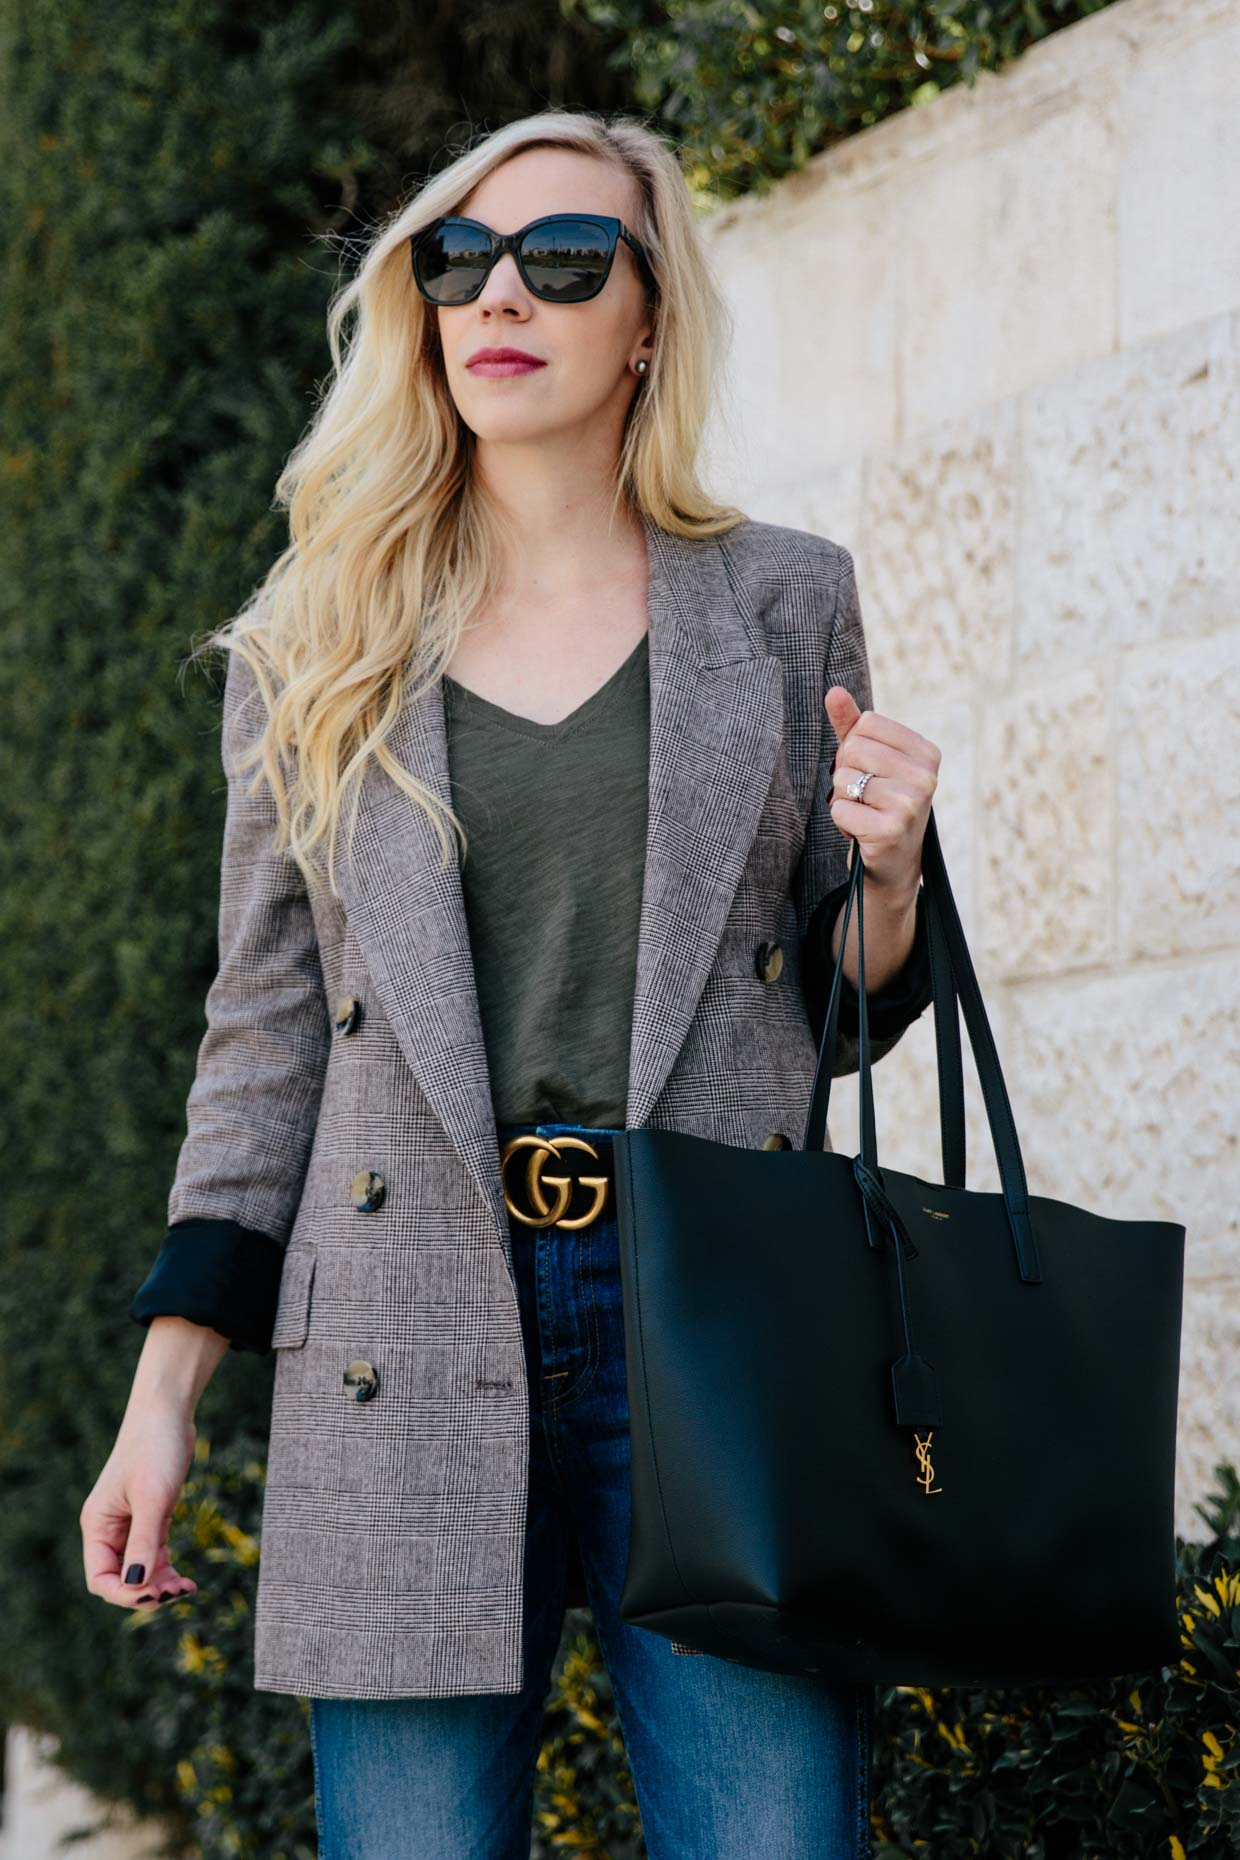 1204dc53f28 Meagan Brandon fashion blogger of Meagan s Moda wears oversized plaid  blazer with Gucci Marmont belt and straight leg jeans